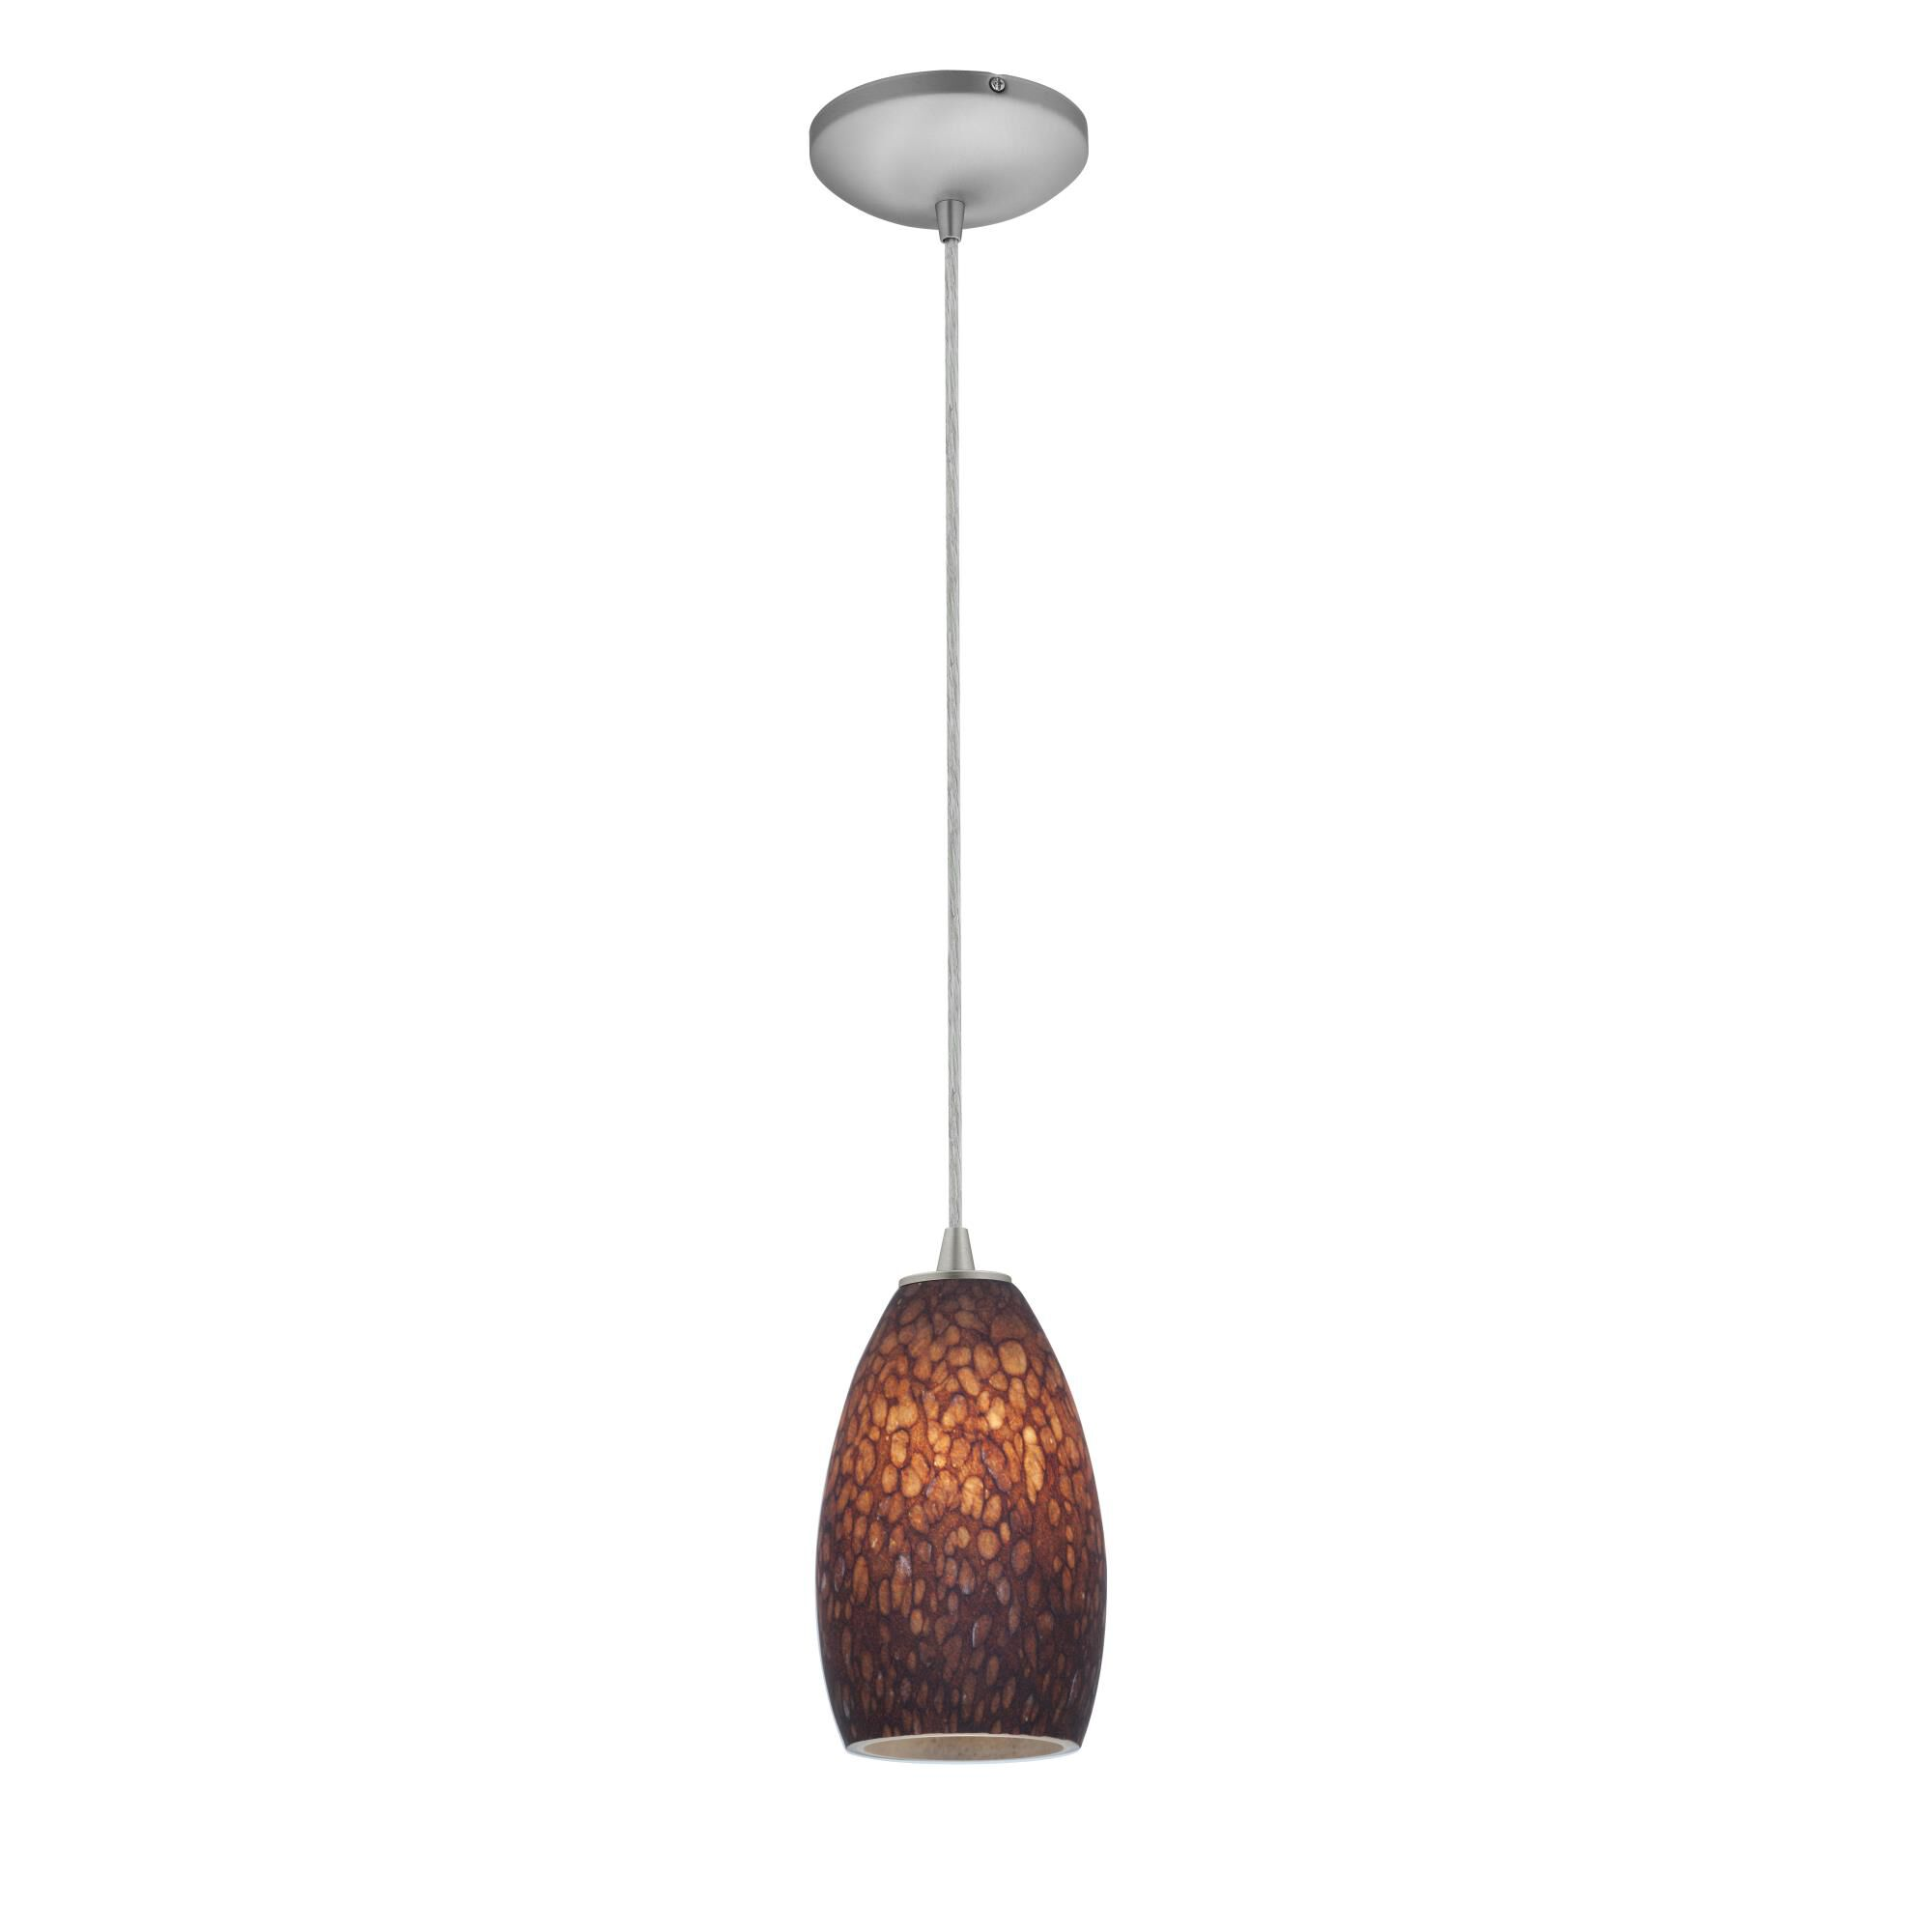 Access Lighting Champagne 9 Inch Mini Pendant Champagne 28012 1C BSBRST Modern Contemporary